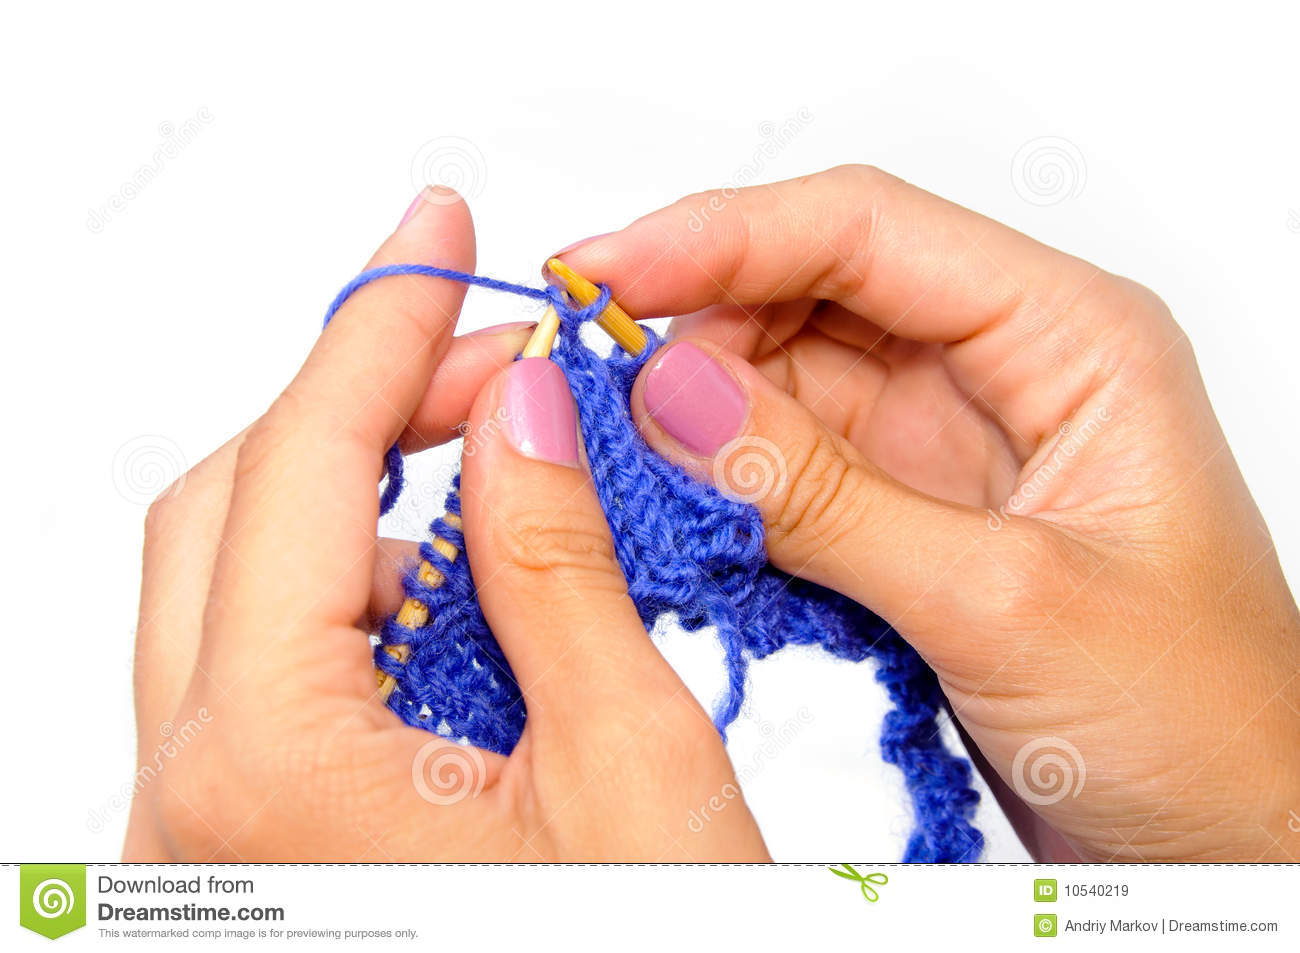 Knitting Hands Clipart : Knitting hands royalty free stock images image